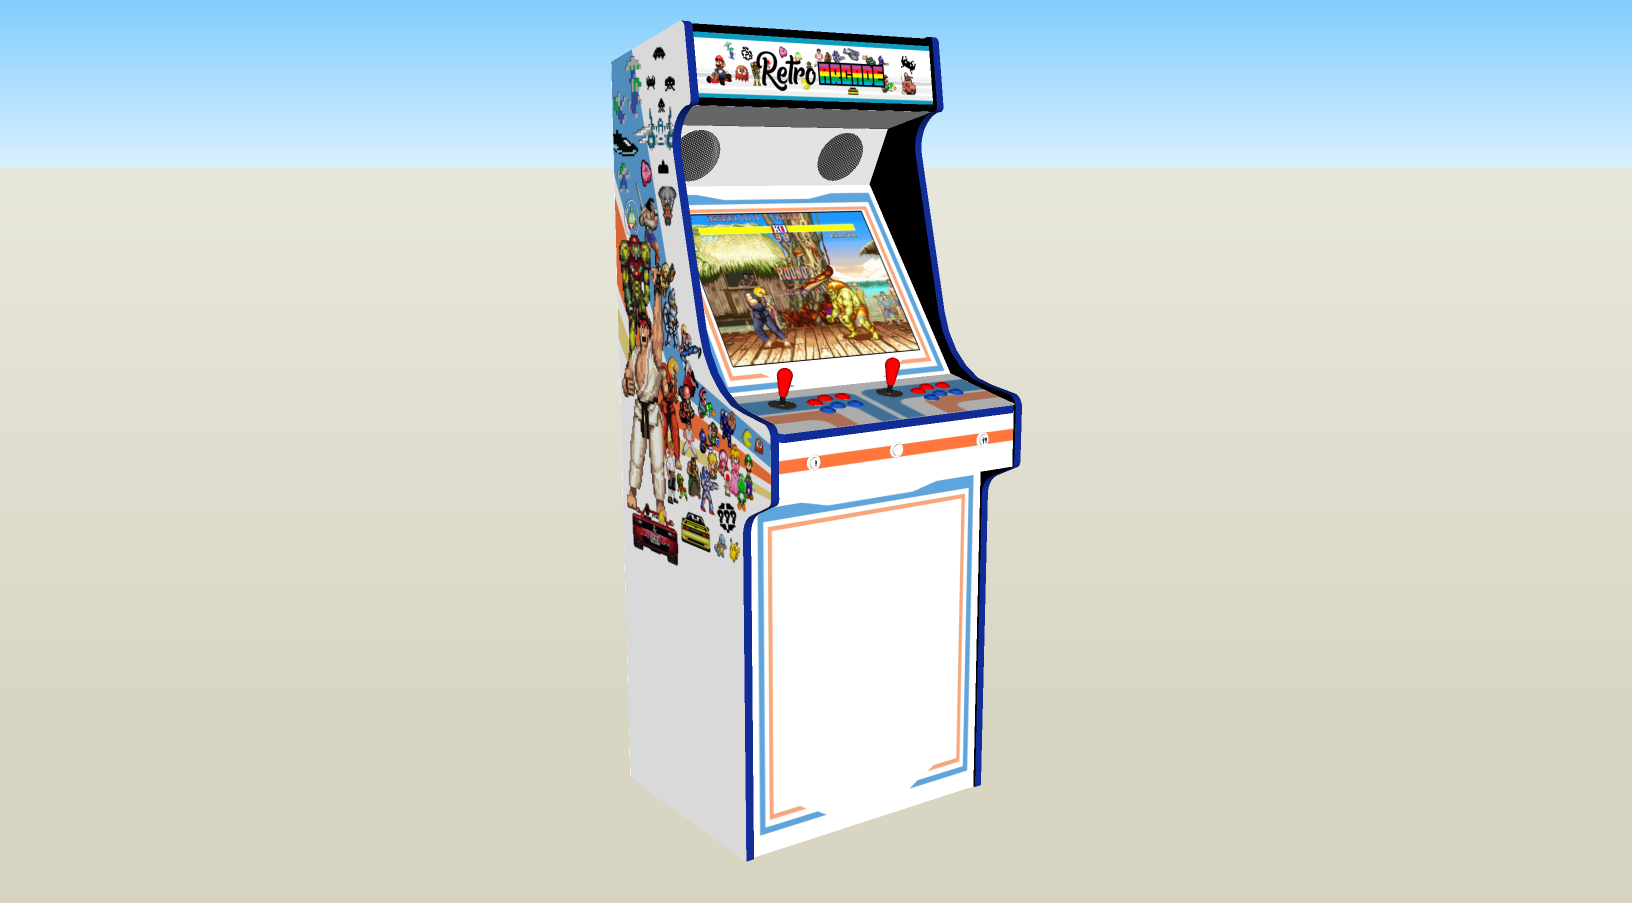 Retro Mash Arcade Machine with 1300 games, 100w subwoofer - left